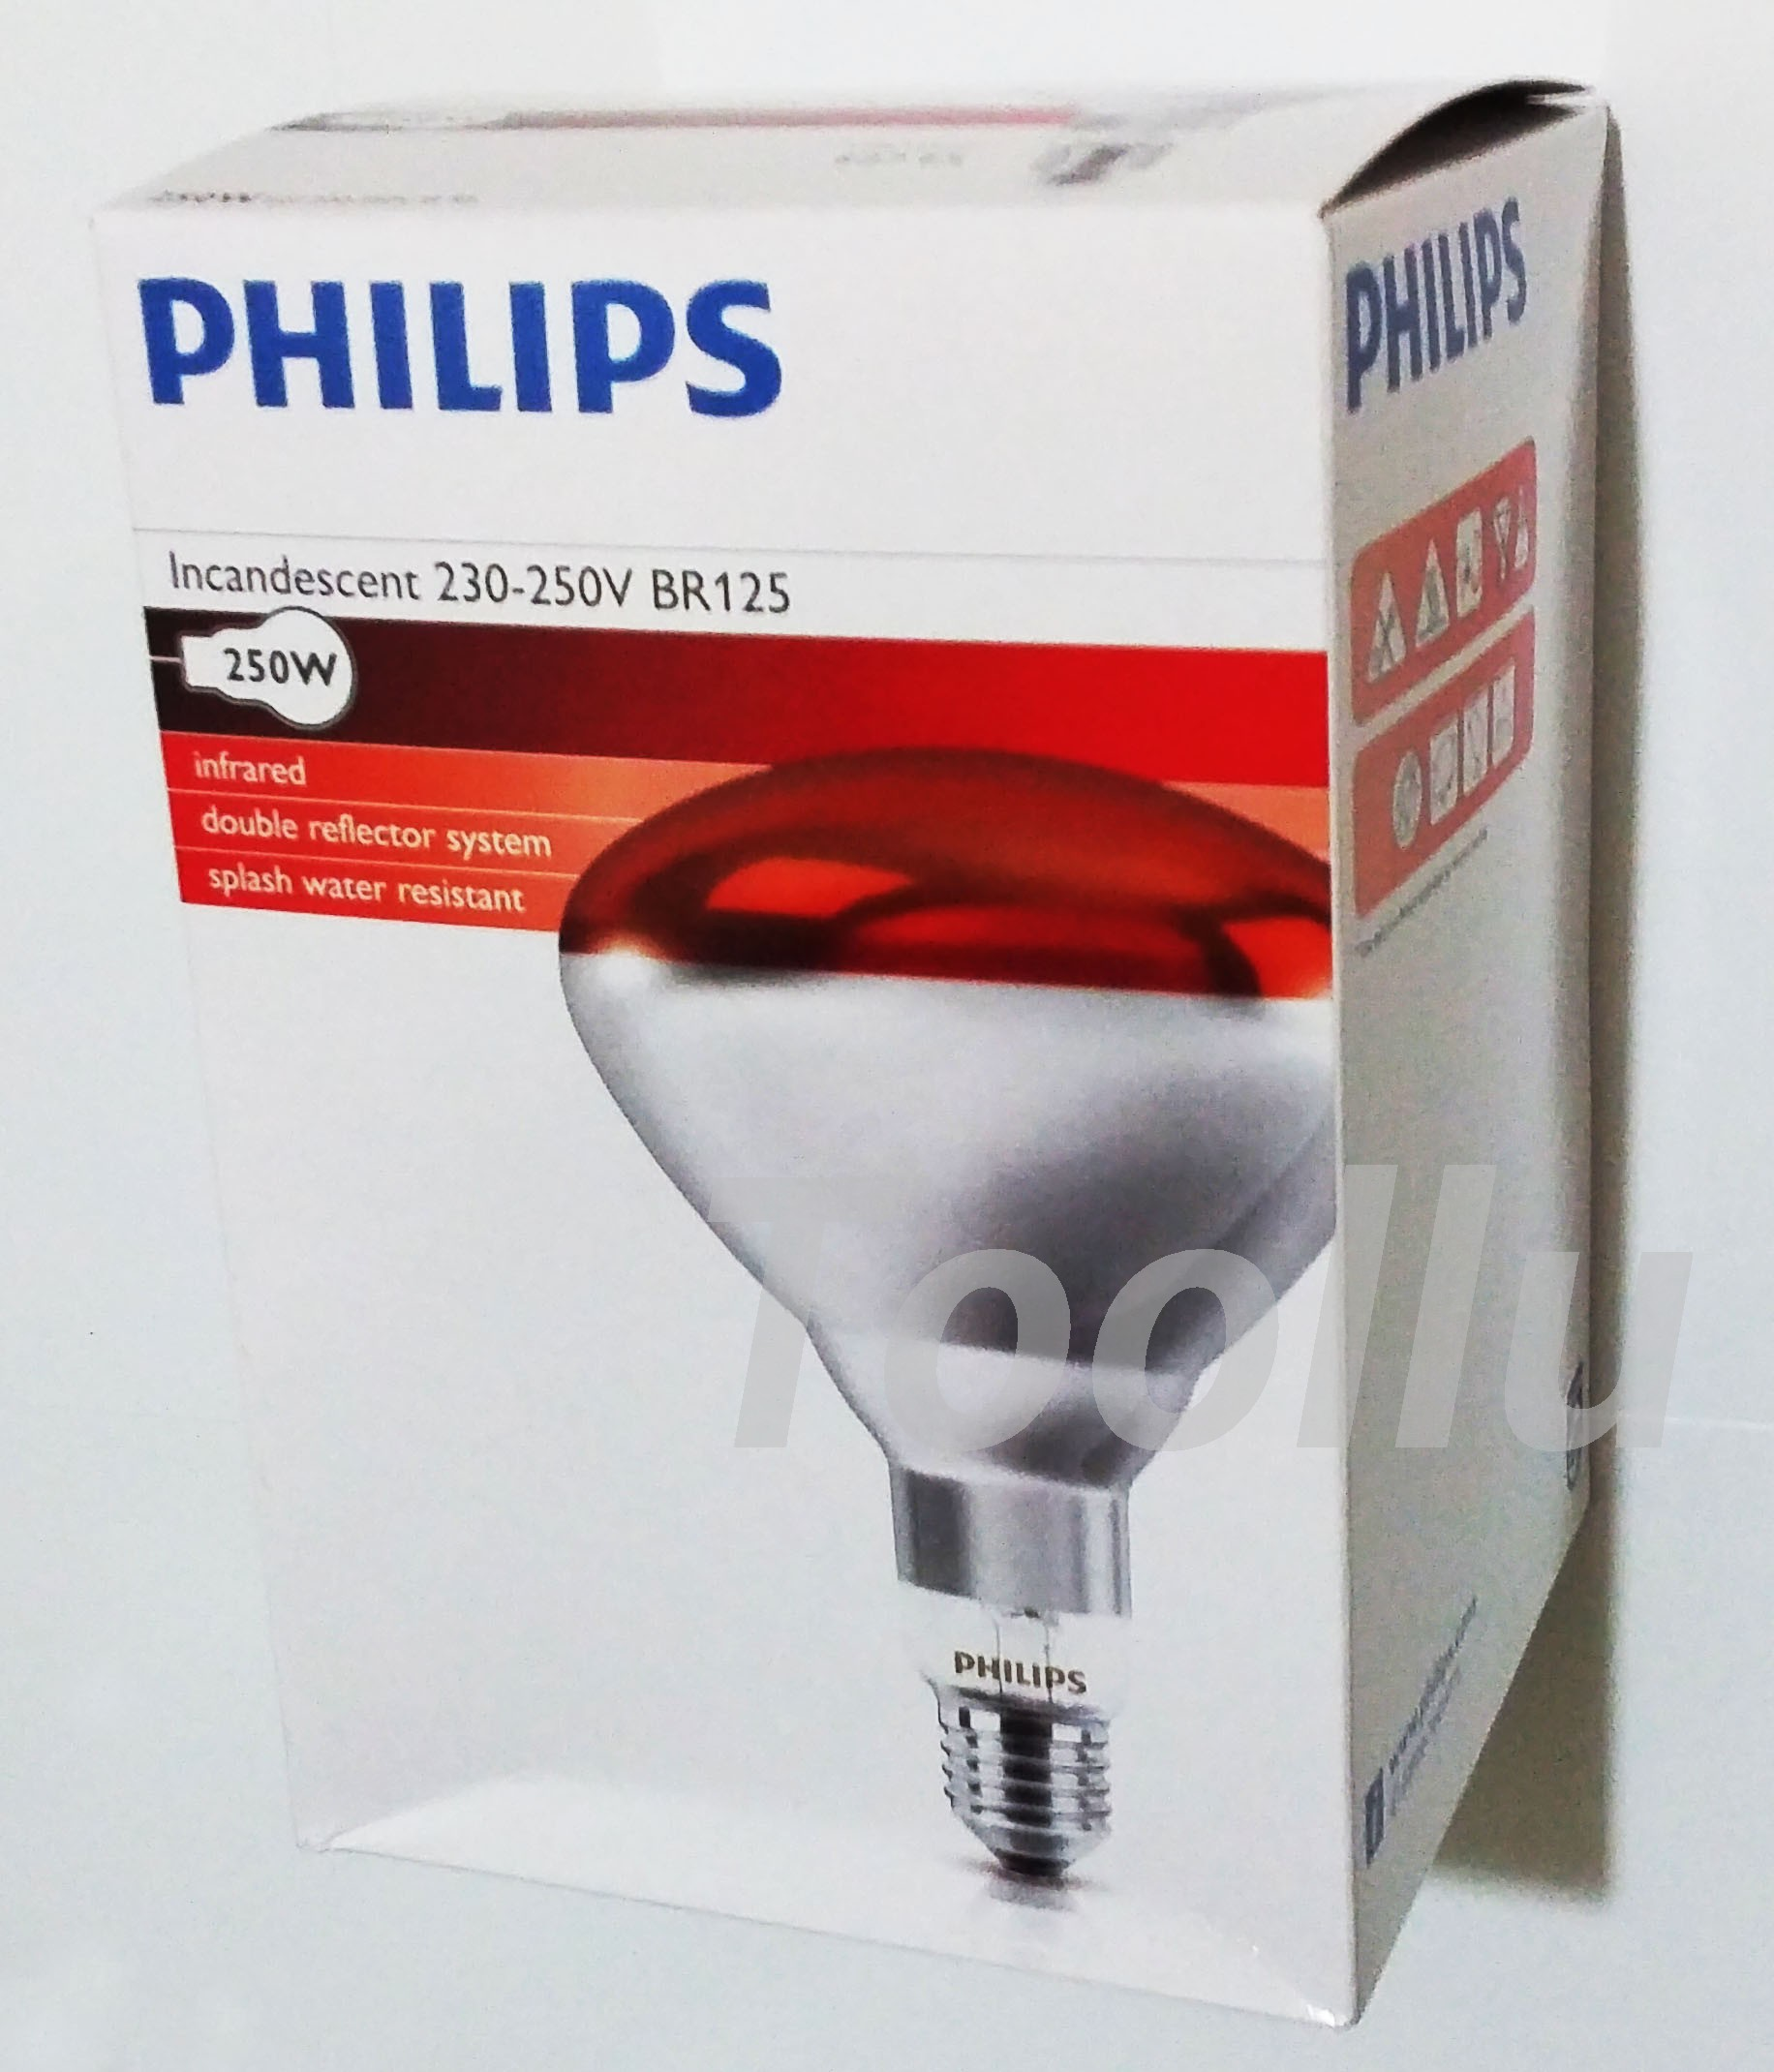 Philips Infrared Heat Light Lamp E27 Bulb 100W 150W 250W 220V 230V ... for Philips Infrared Heat Lamp  165jwn